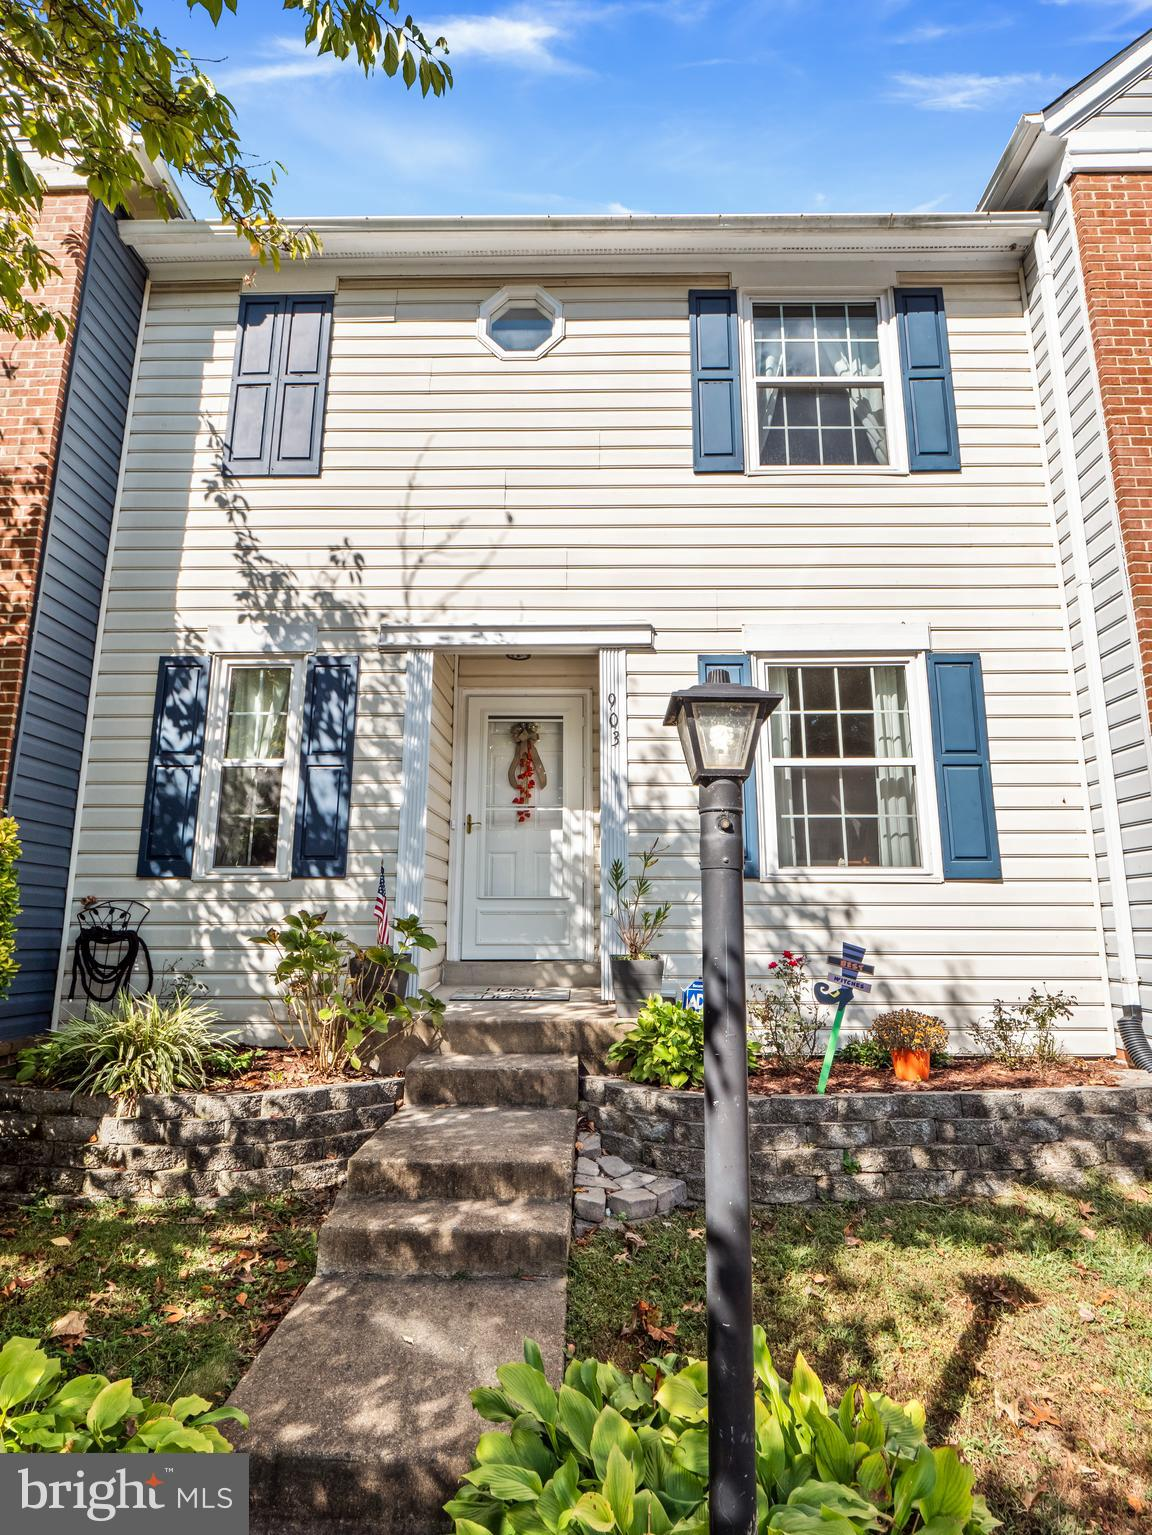 Located close to Quantico, this townhome sits beautifully backed to the trees. Our 3 bedroom, 2 full